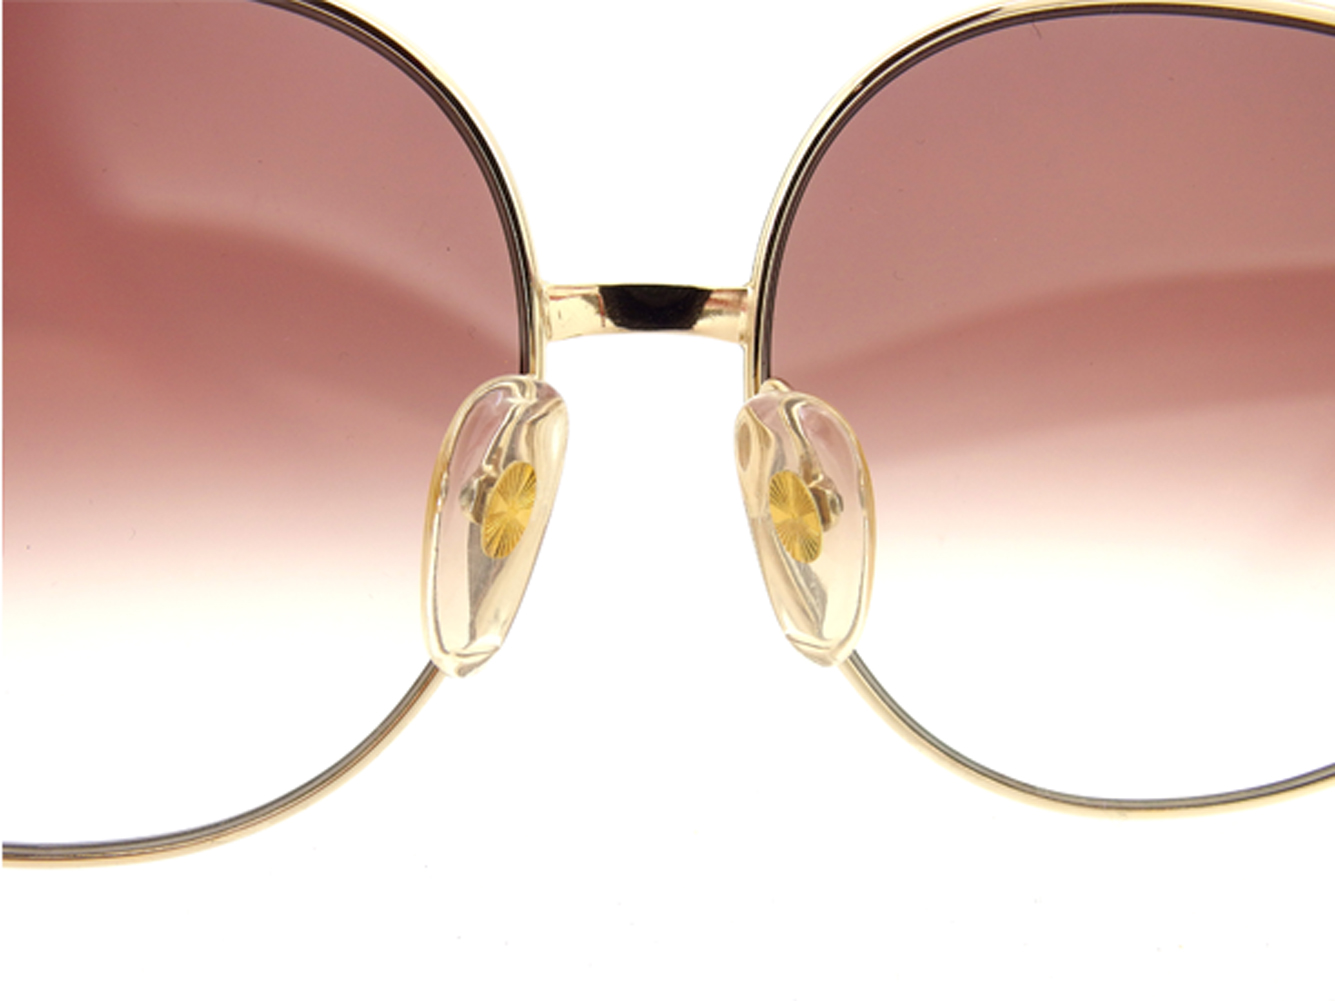 3d820bf720 Dior Dior sunglasses glasses eyewear Lady s vintage gradation red gold  brown plastic X gold metal fittings beauty product sale T7053